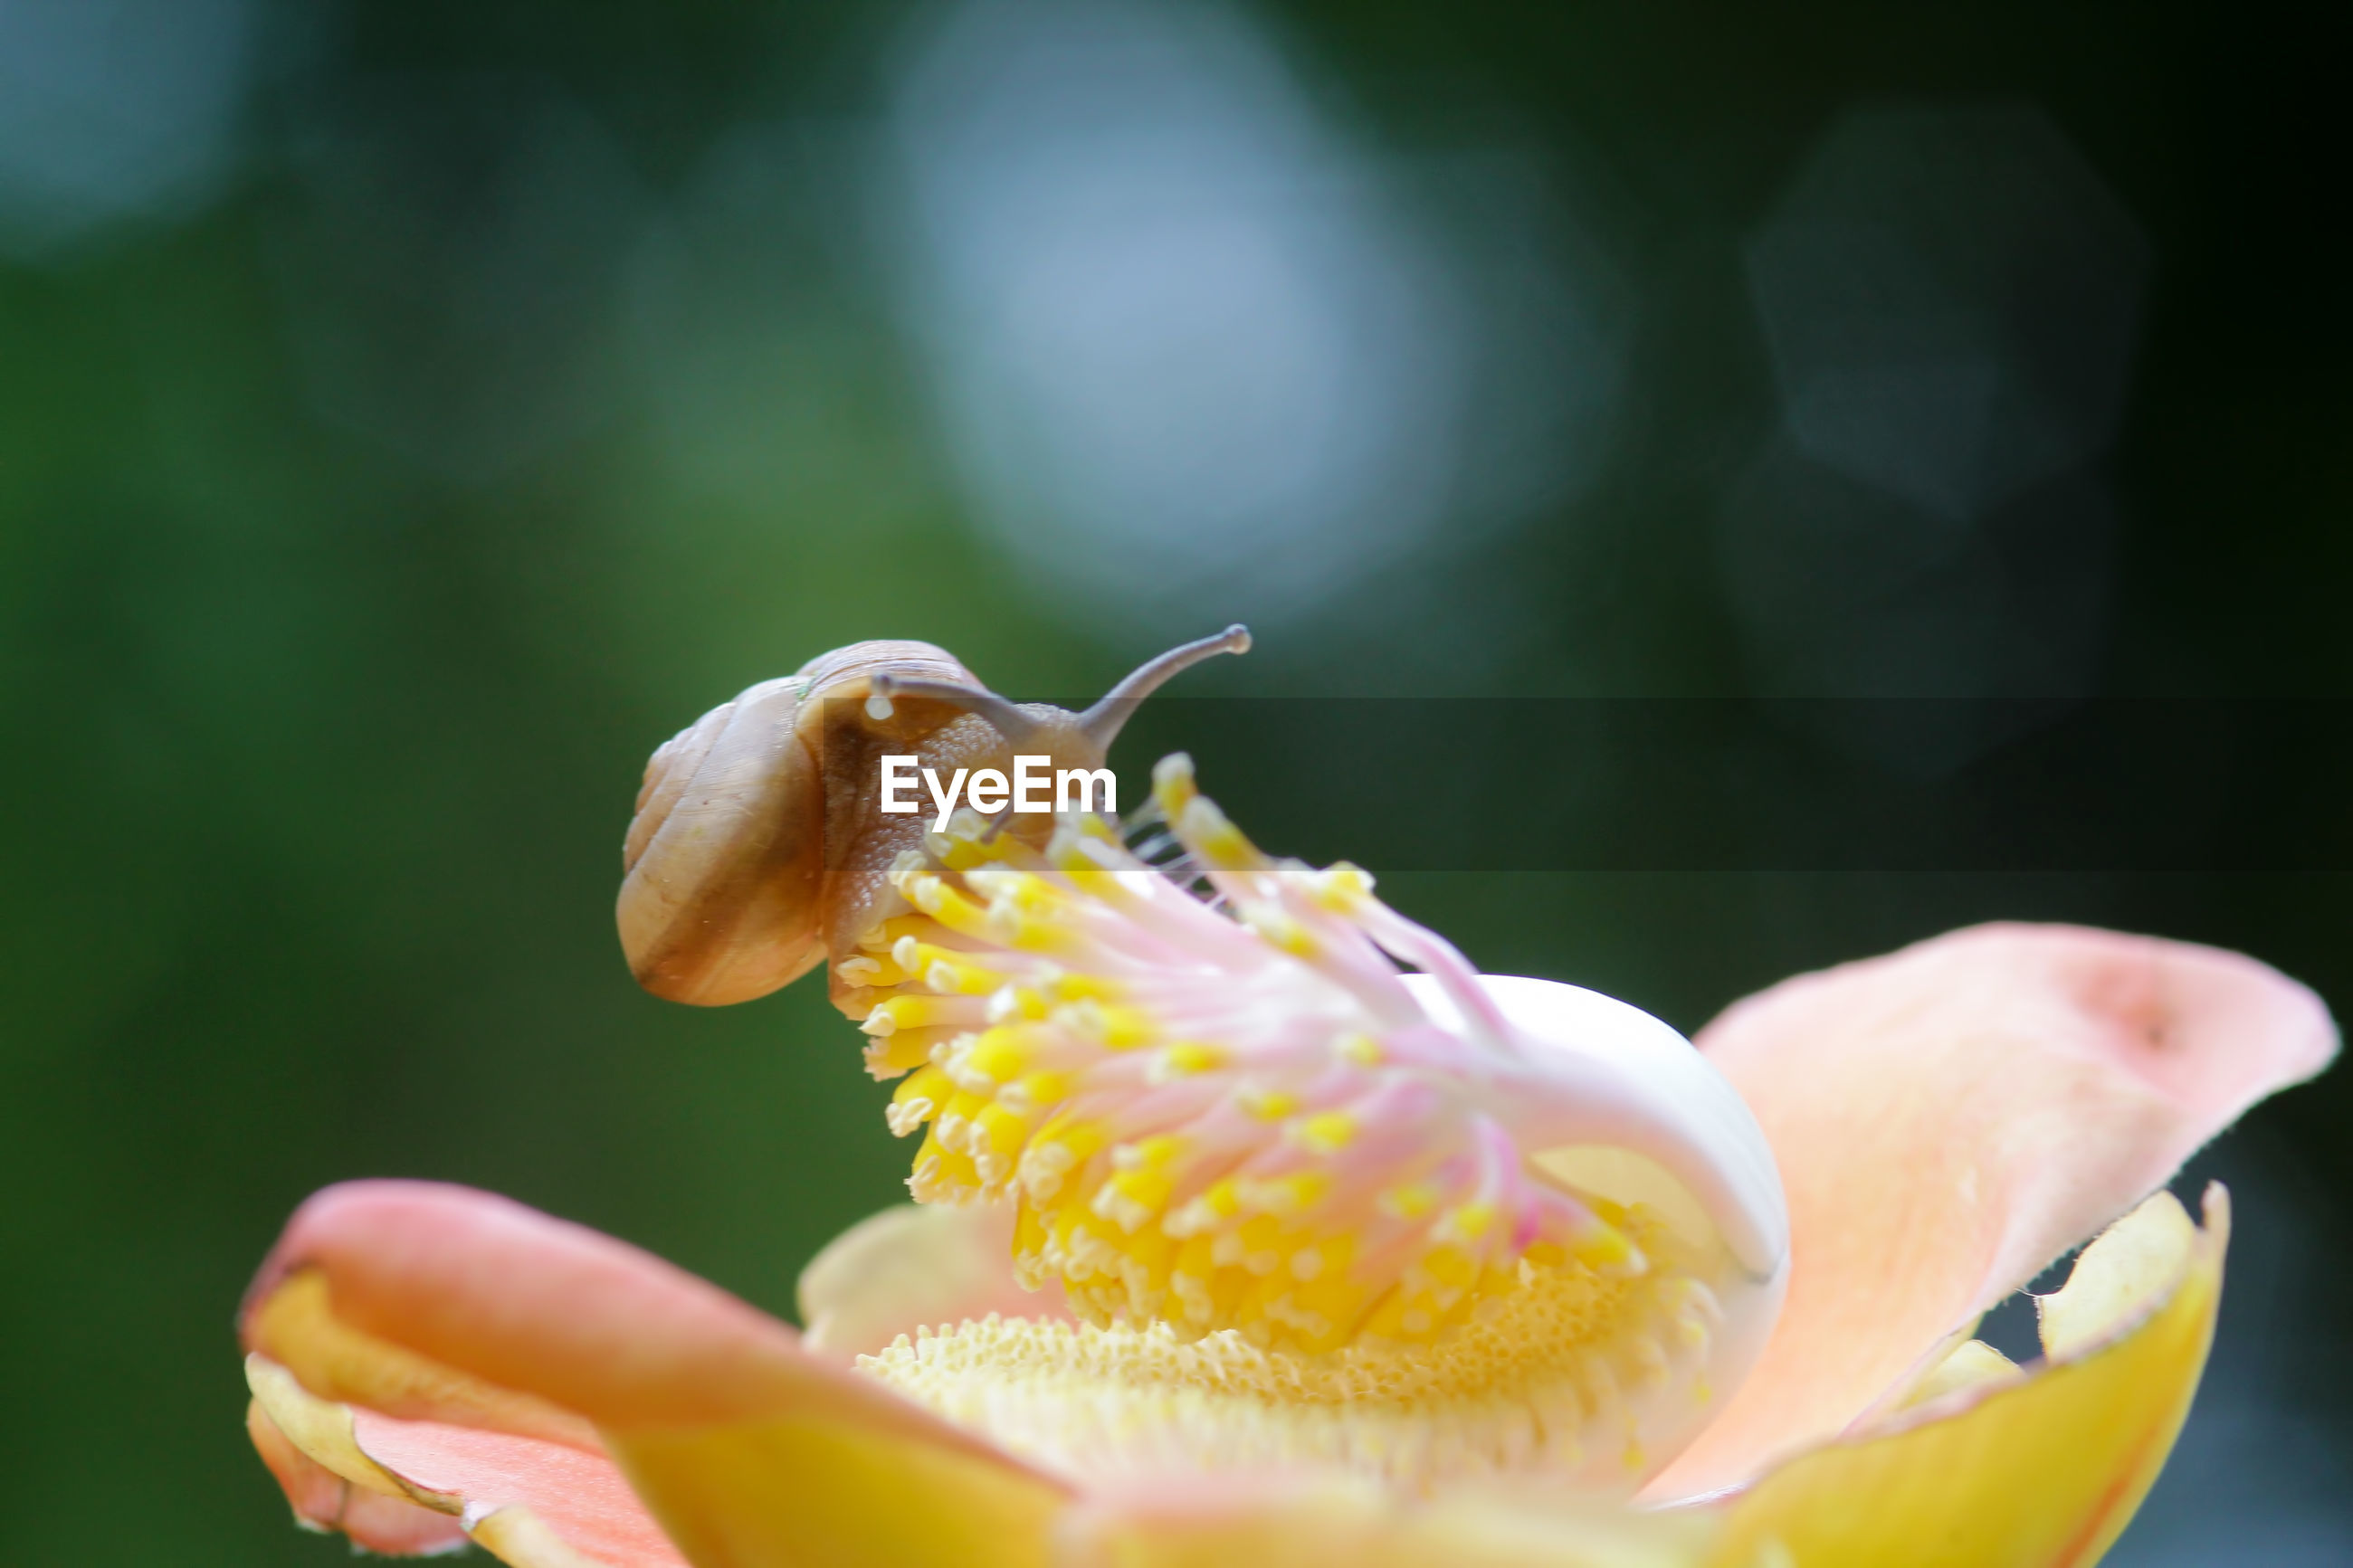 CLOSE-UP OF HONEY BEE ON YELLOW FLOWERING PLANT